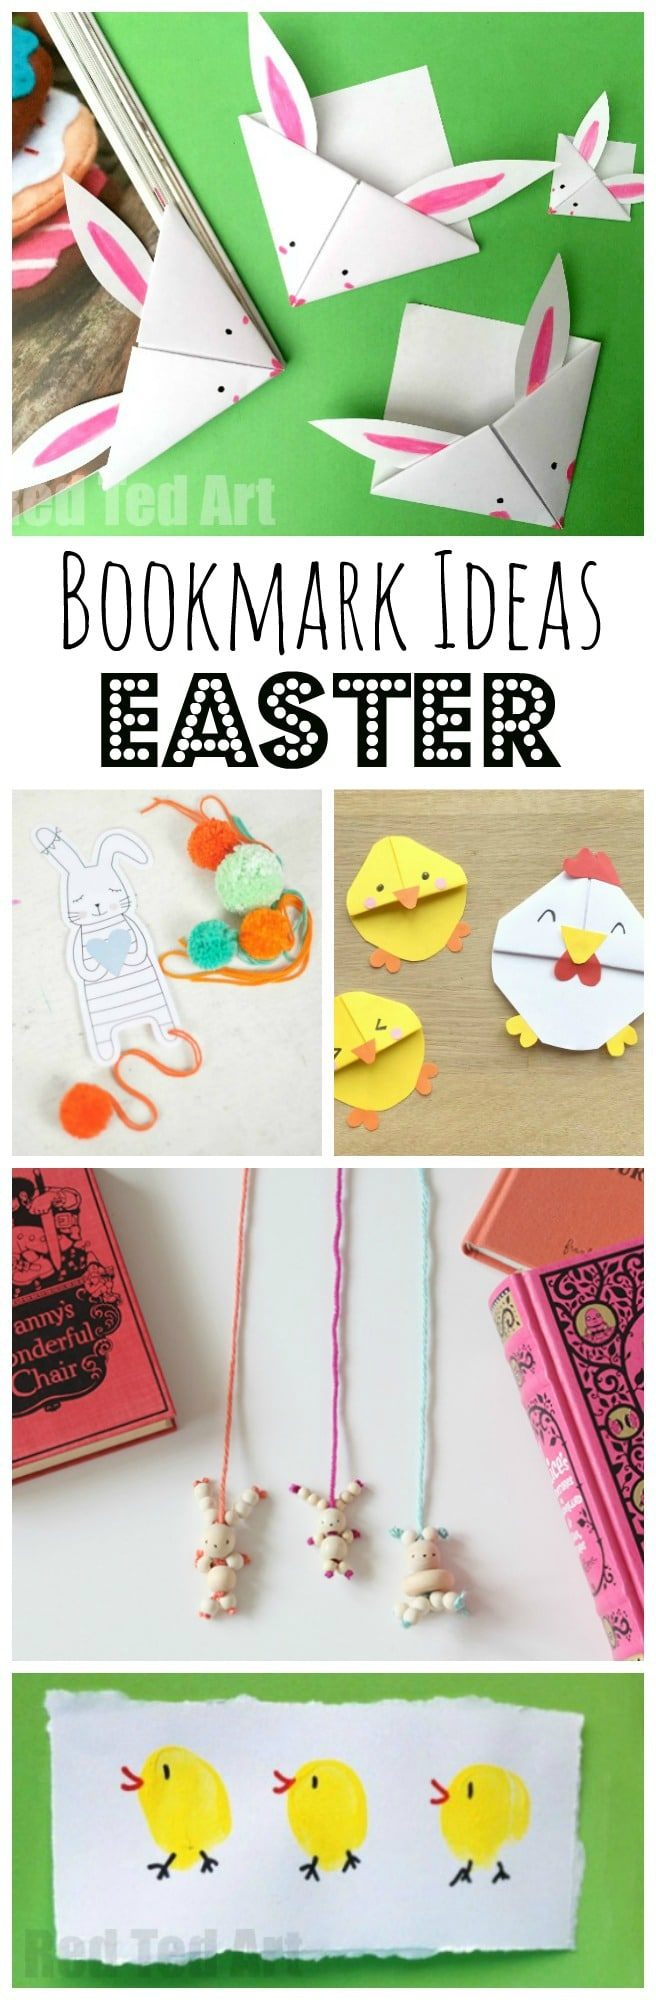 Easter Bookmark Crafts - if you love making your own DIY Bookmarks - whether it is Easter Corner Bookmarks or Fingerprint Bookmarks or getting a little help from Printables, you simply HAVE TO SEE these super duper cute Easter Bookmark Designs. They are so very lovely and so very cute and above all Easy Easter Bookmarks to make with the kids or for yourself. The question is - which will you make first!! Happy Crafting!